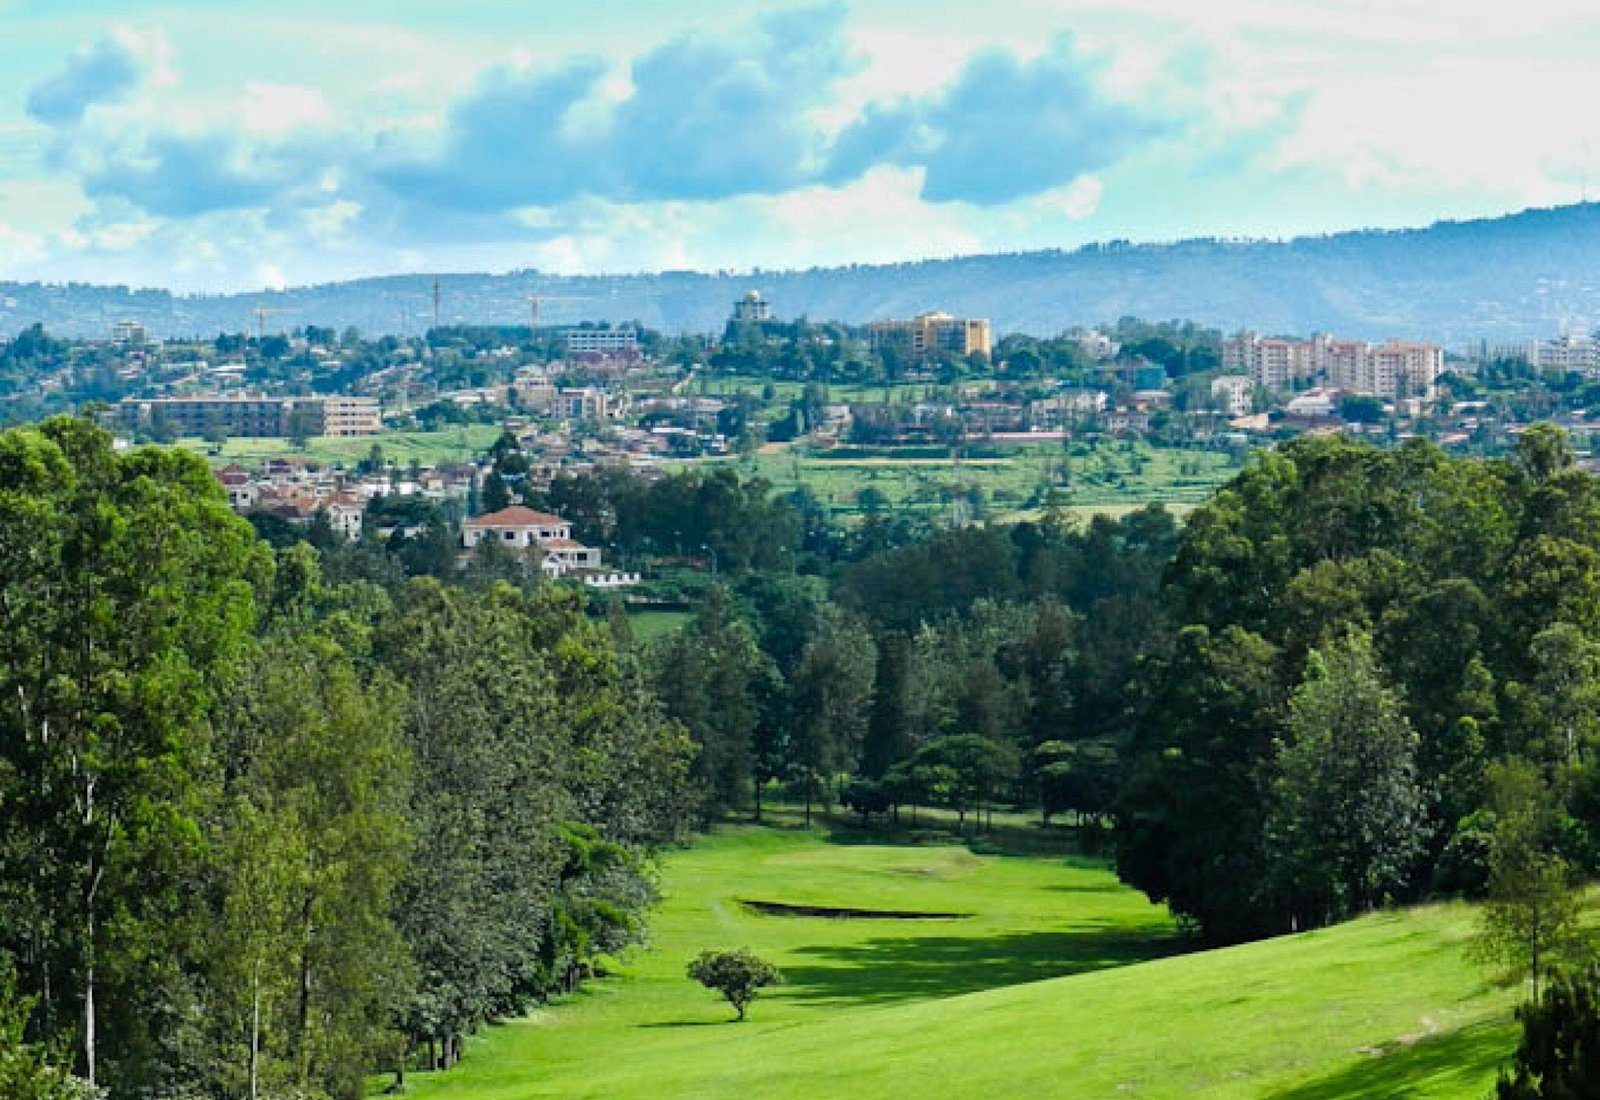 Kigali, the clean and peaceful city!